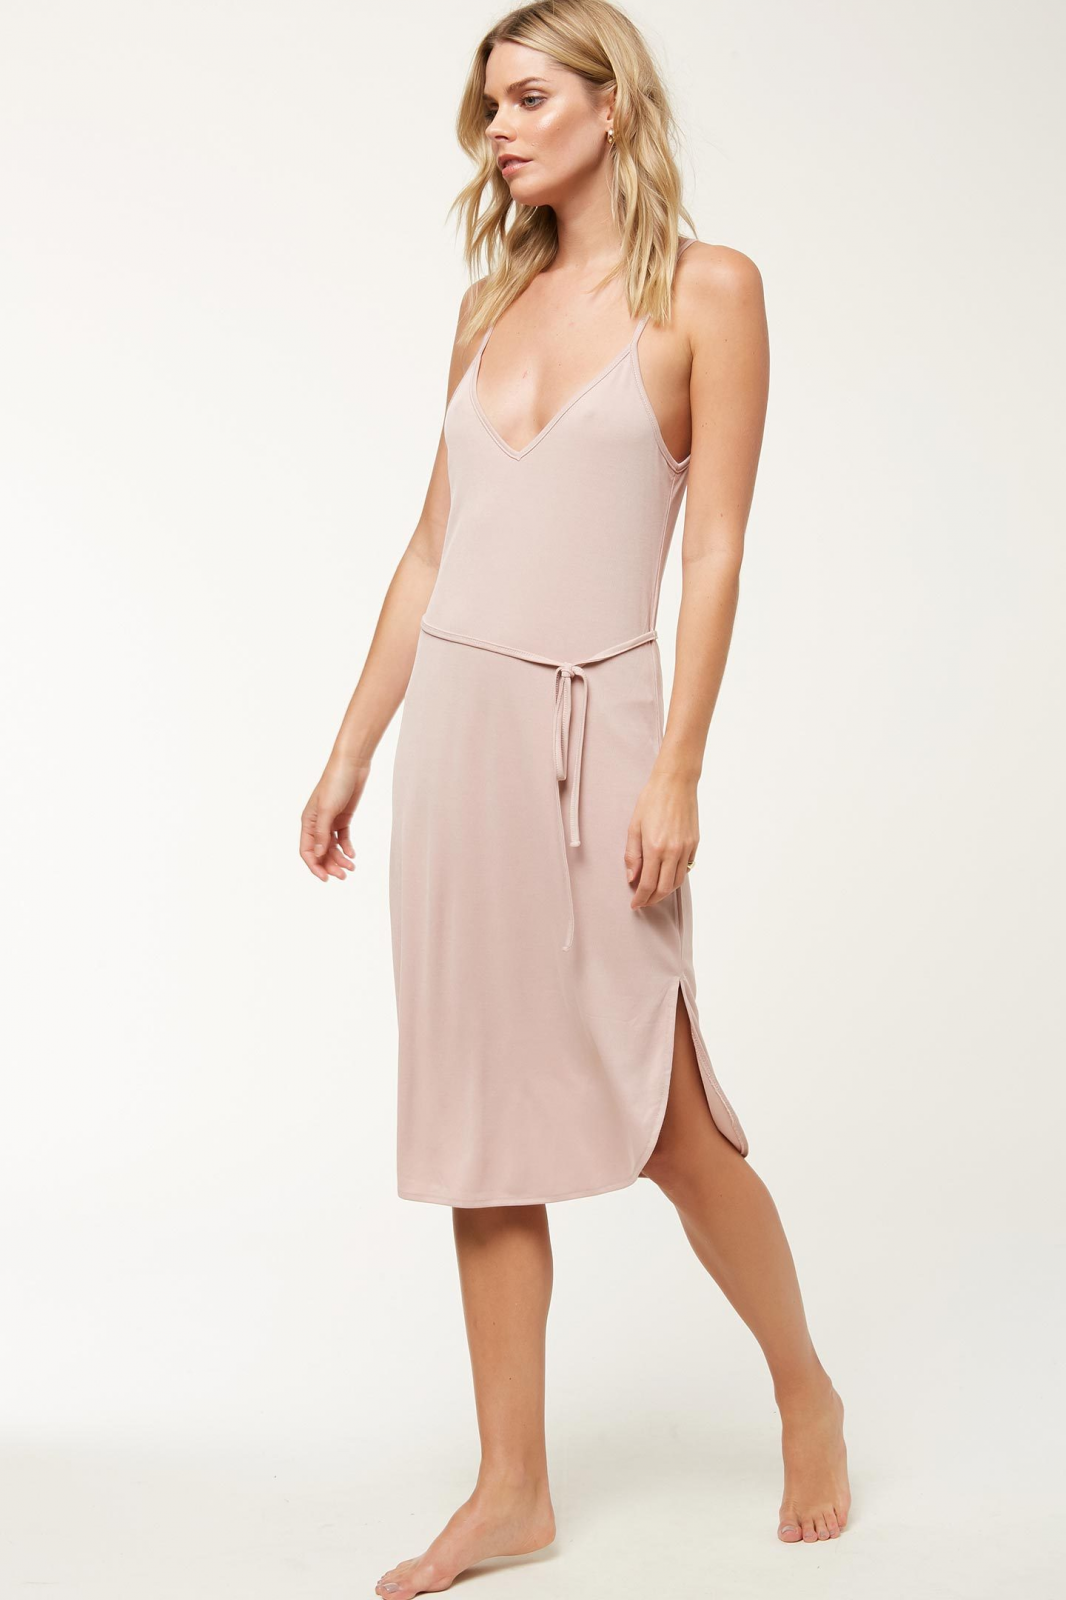 ONEILL DEVIE DRESS